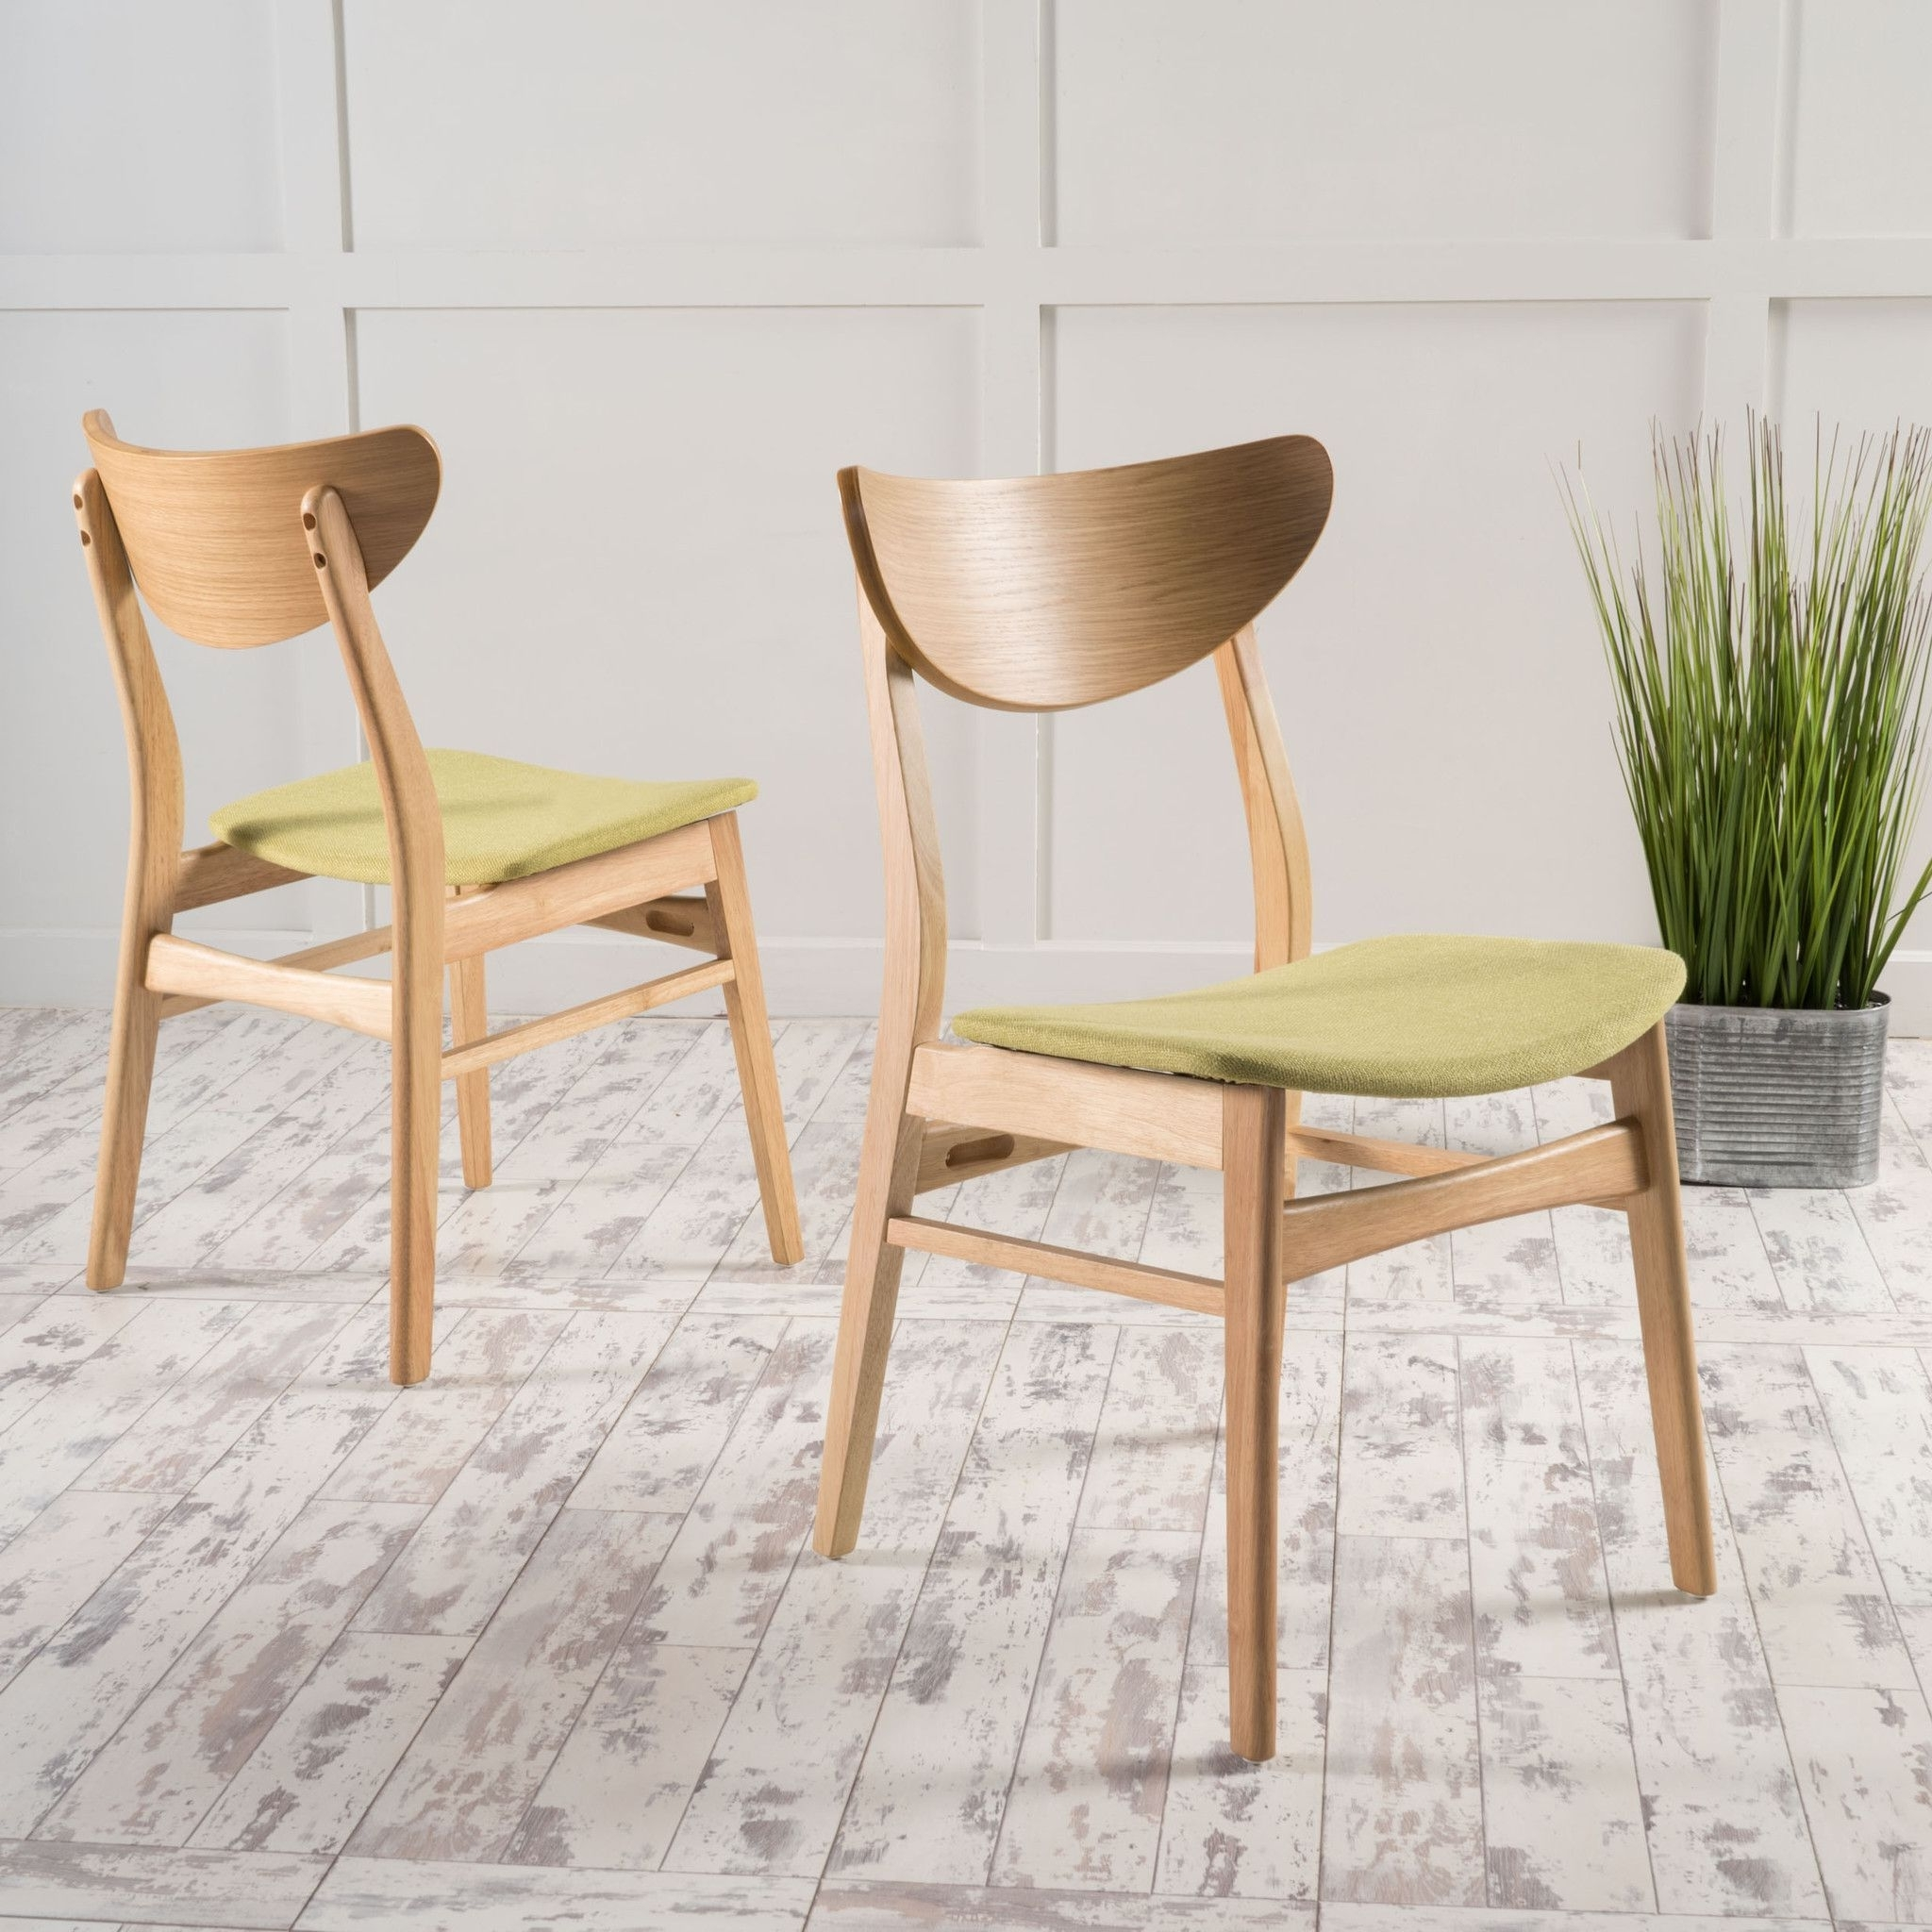 Stylish Dining Chairs Throughout 2017 Camilla Scandinavian Design Dining Chairs (Set Of 2) This Stylish (View 6 of 25)